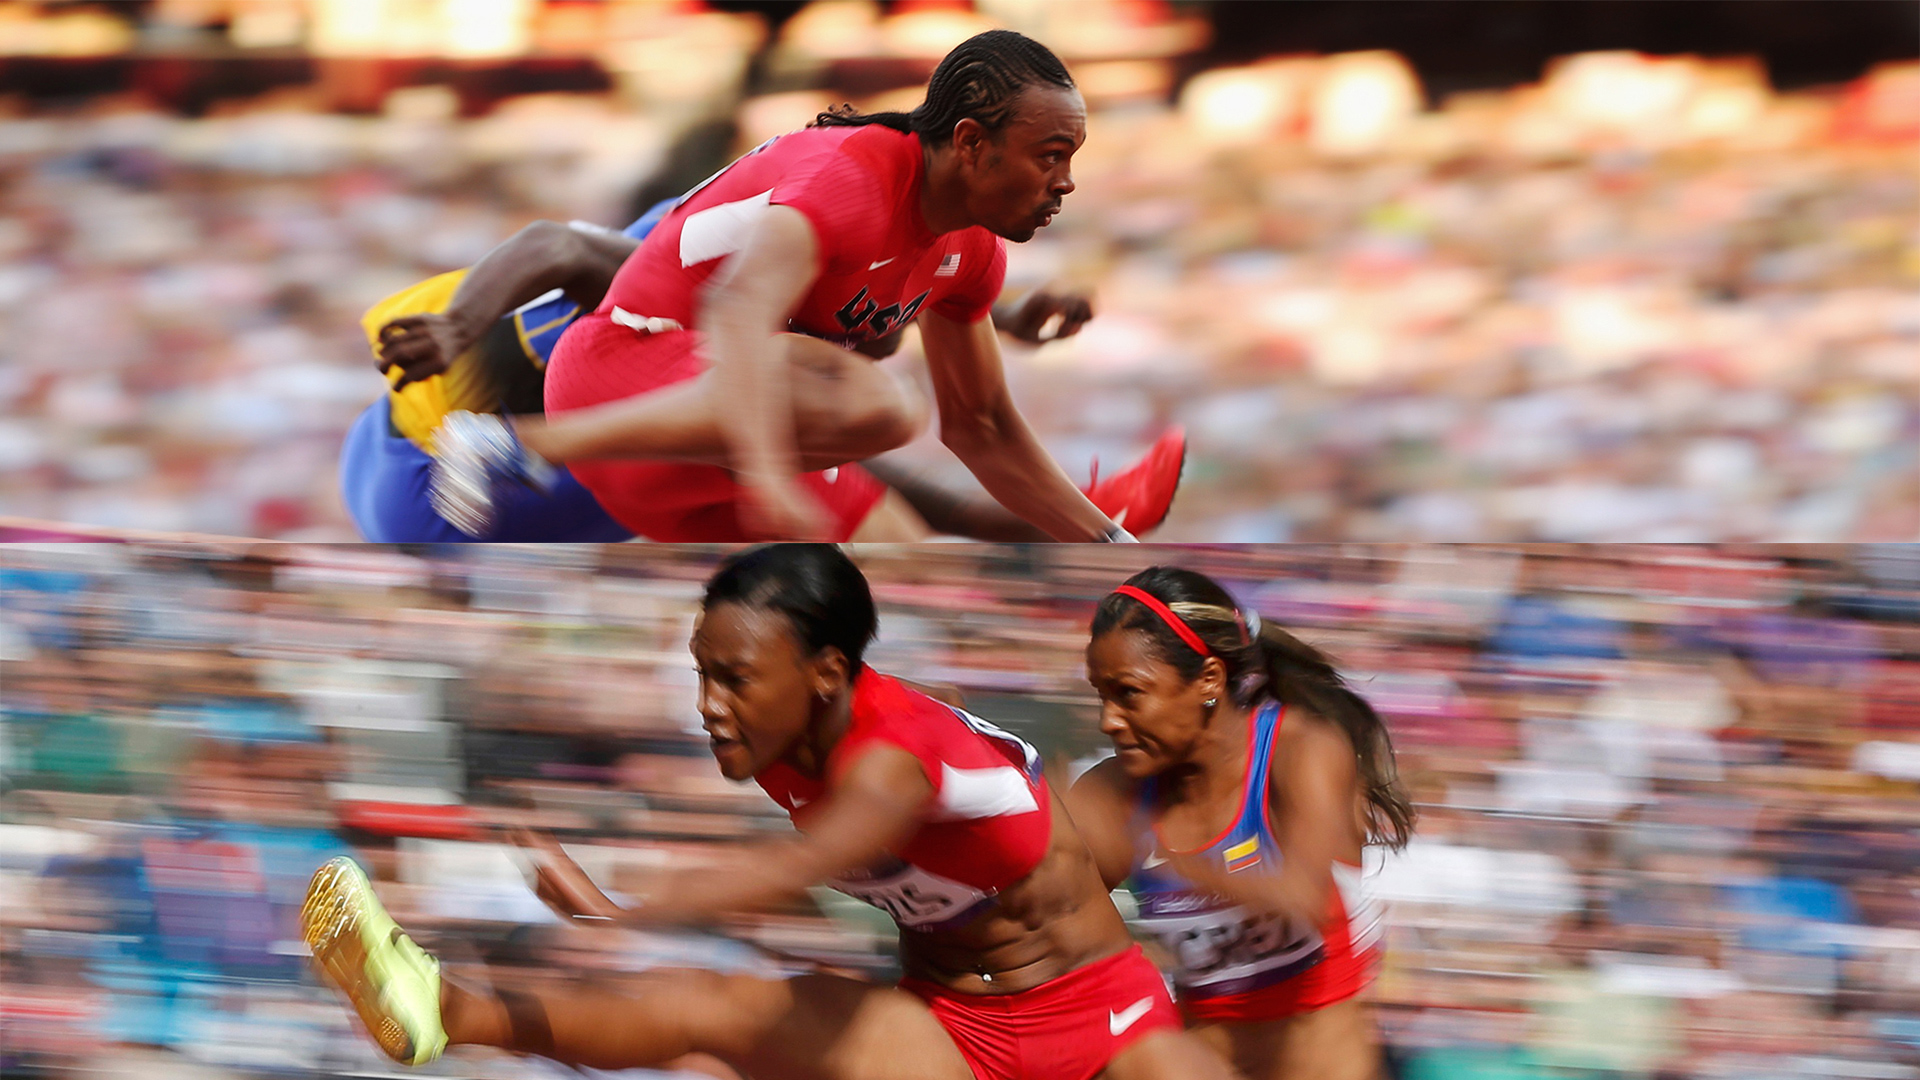 These women are Olympic athletes. Why do they have to look like showgirls?